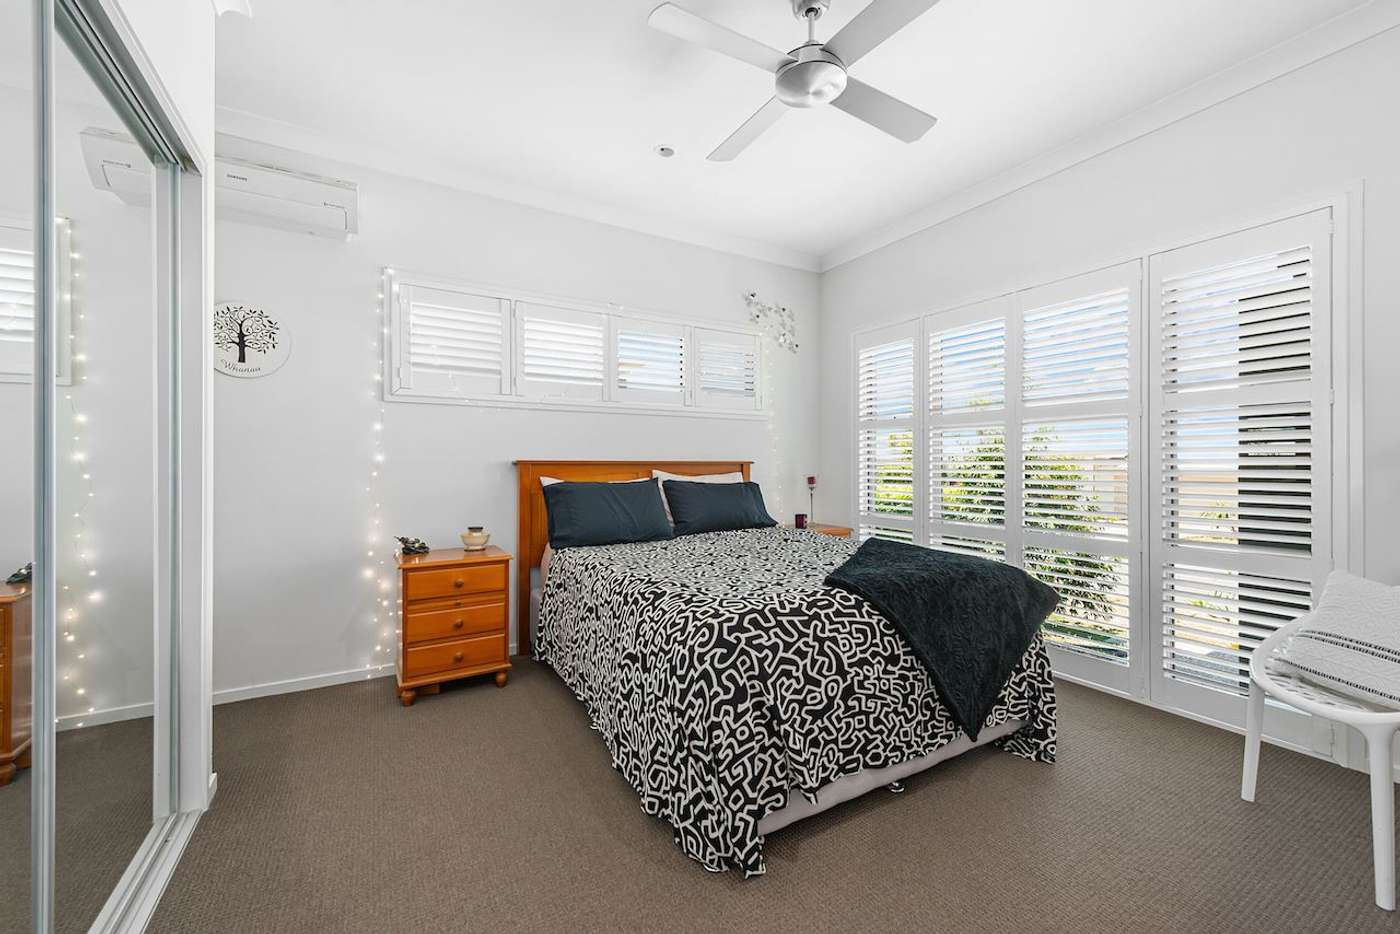 Seventh view of Homely house listing, 33 Wildwood Circuit, Mango Hill QLD 4509